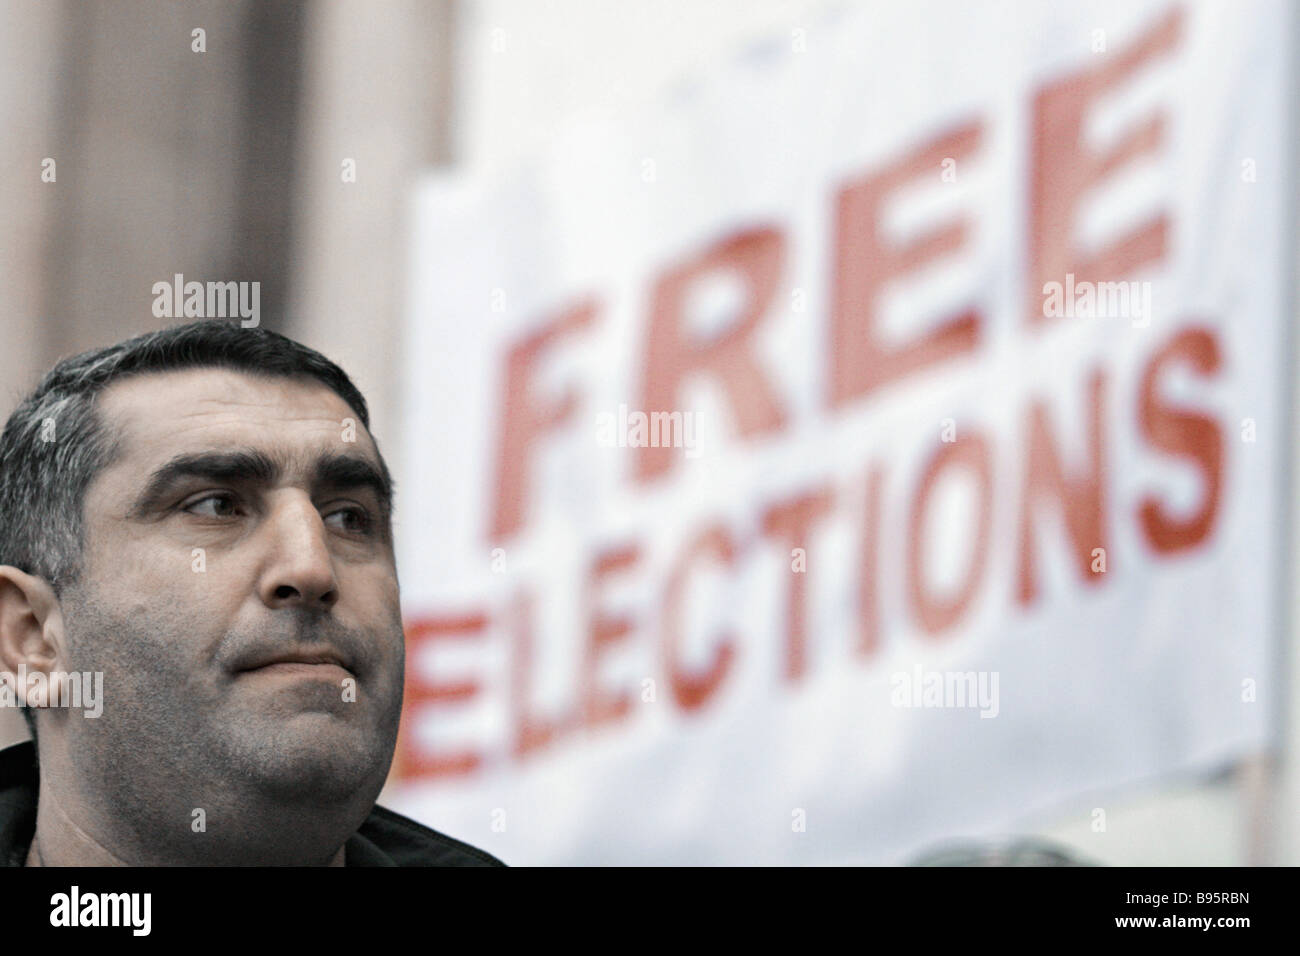 A Georgian opposition demonstrator protesting in Tbilisi - Stock Image